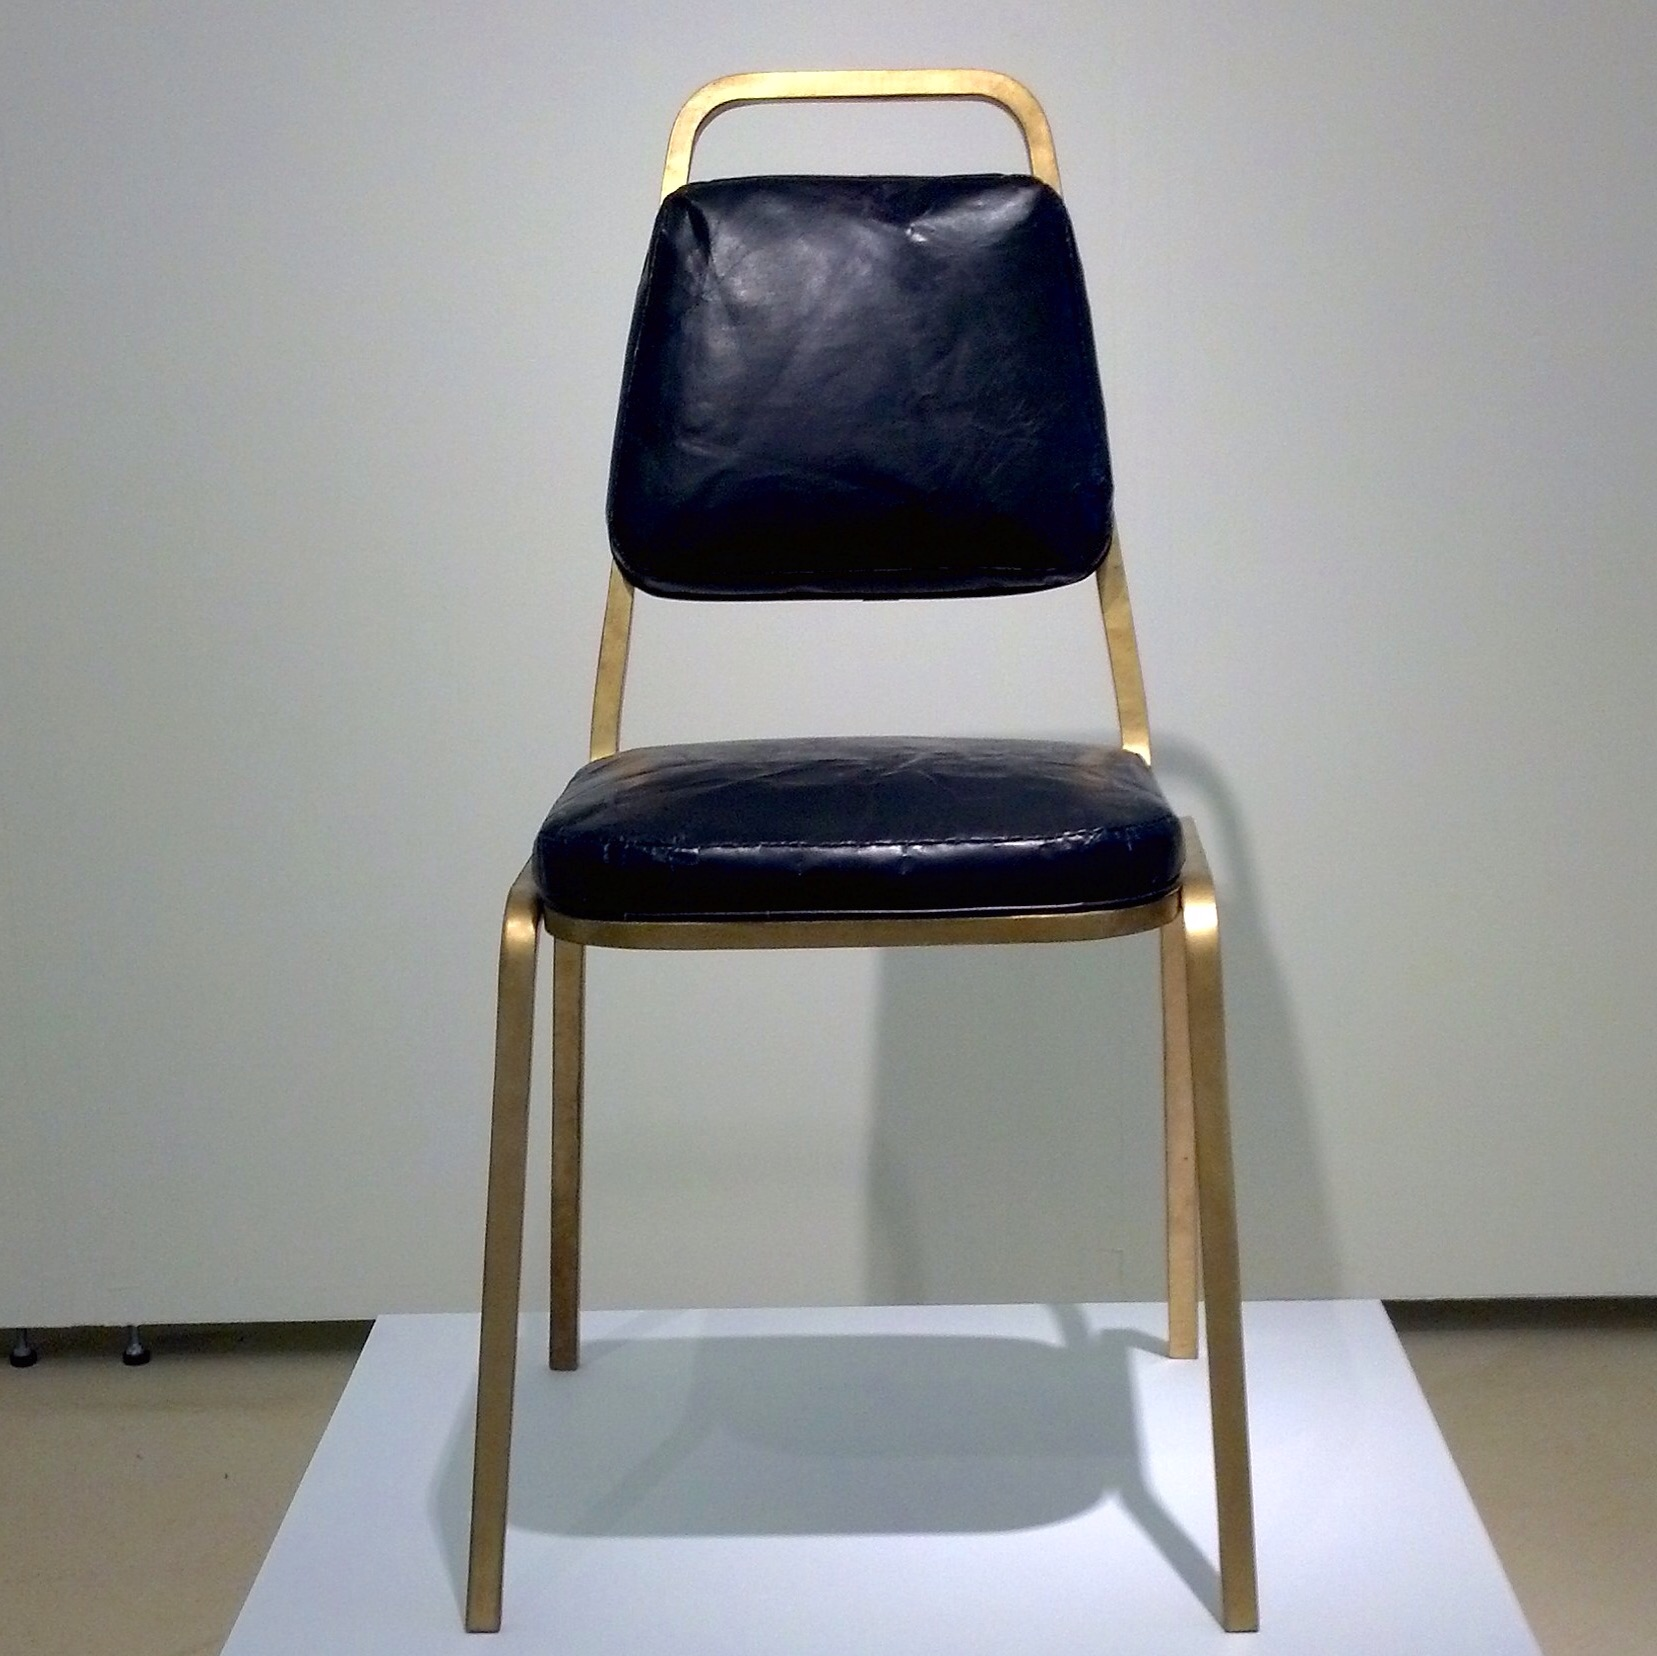 Tomczyk's finished Banquet Chair on display at the Torrance Art Museum. Photo courtesy of the artist